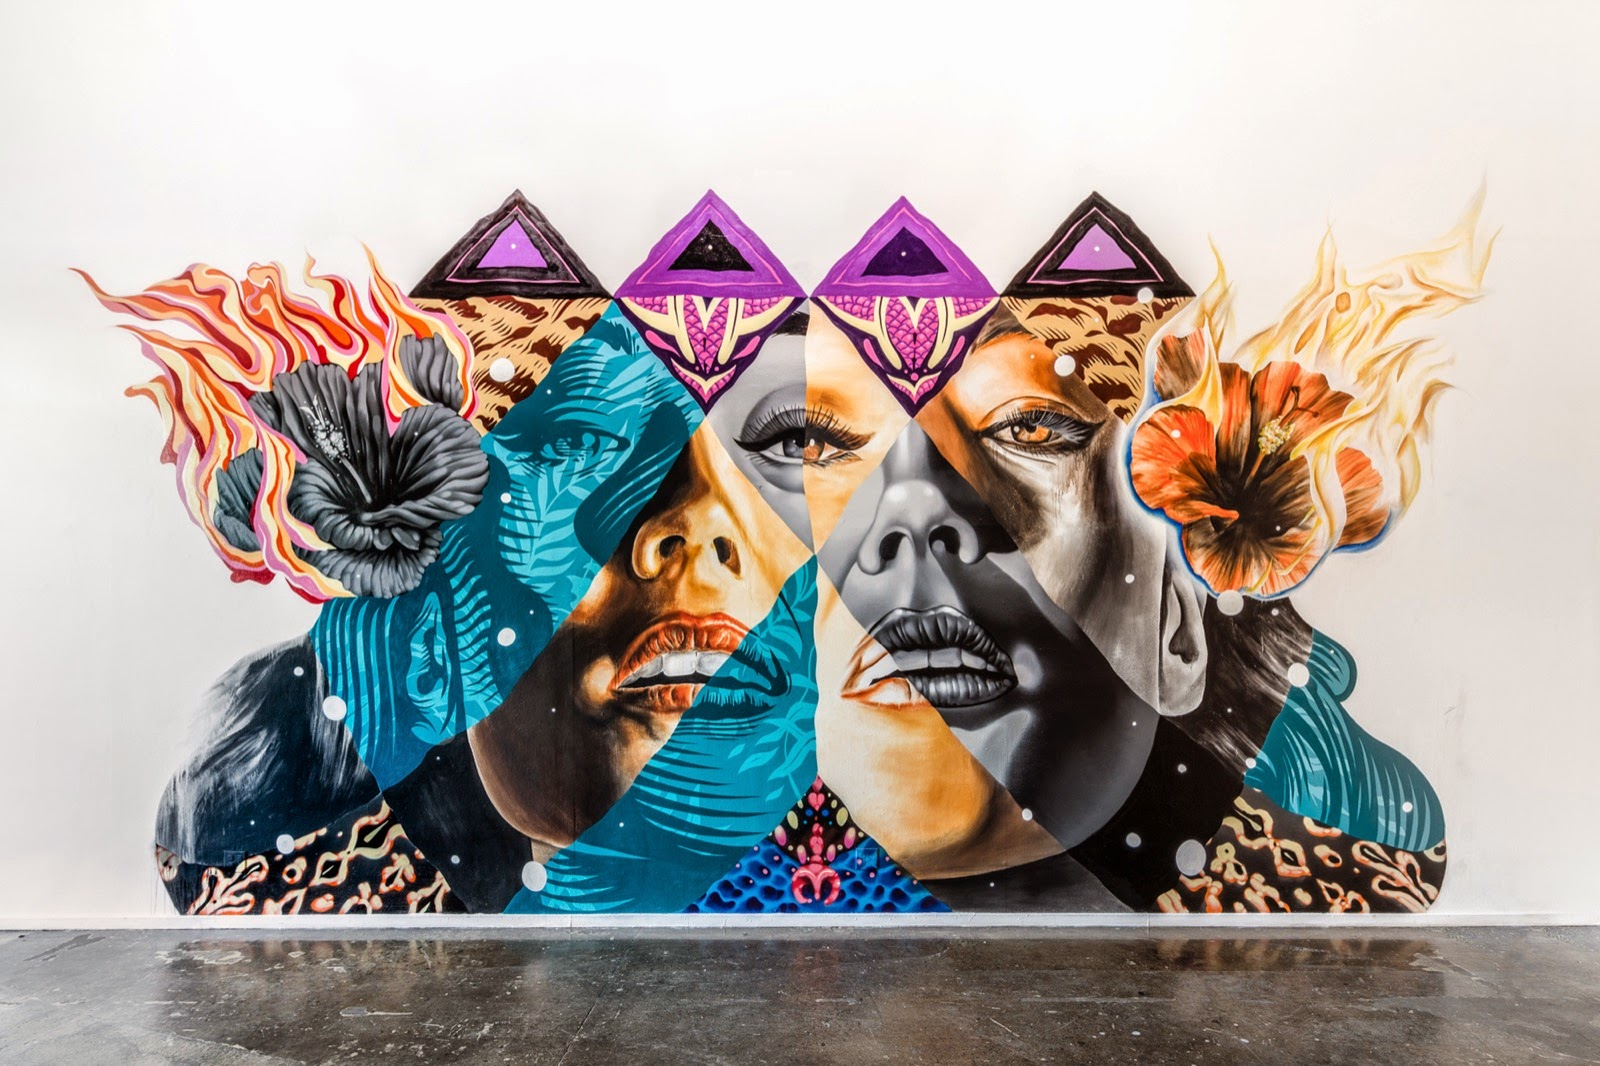 Kamea Hadar and Tristan Eaton uncover a new indoor collaboration in Los Angeles, USA (8)